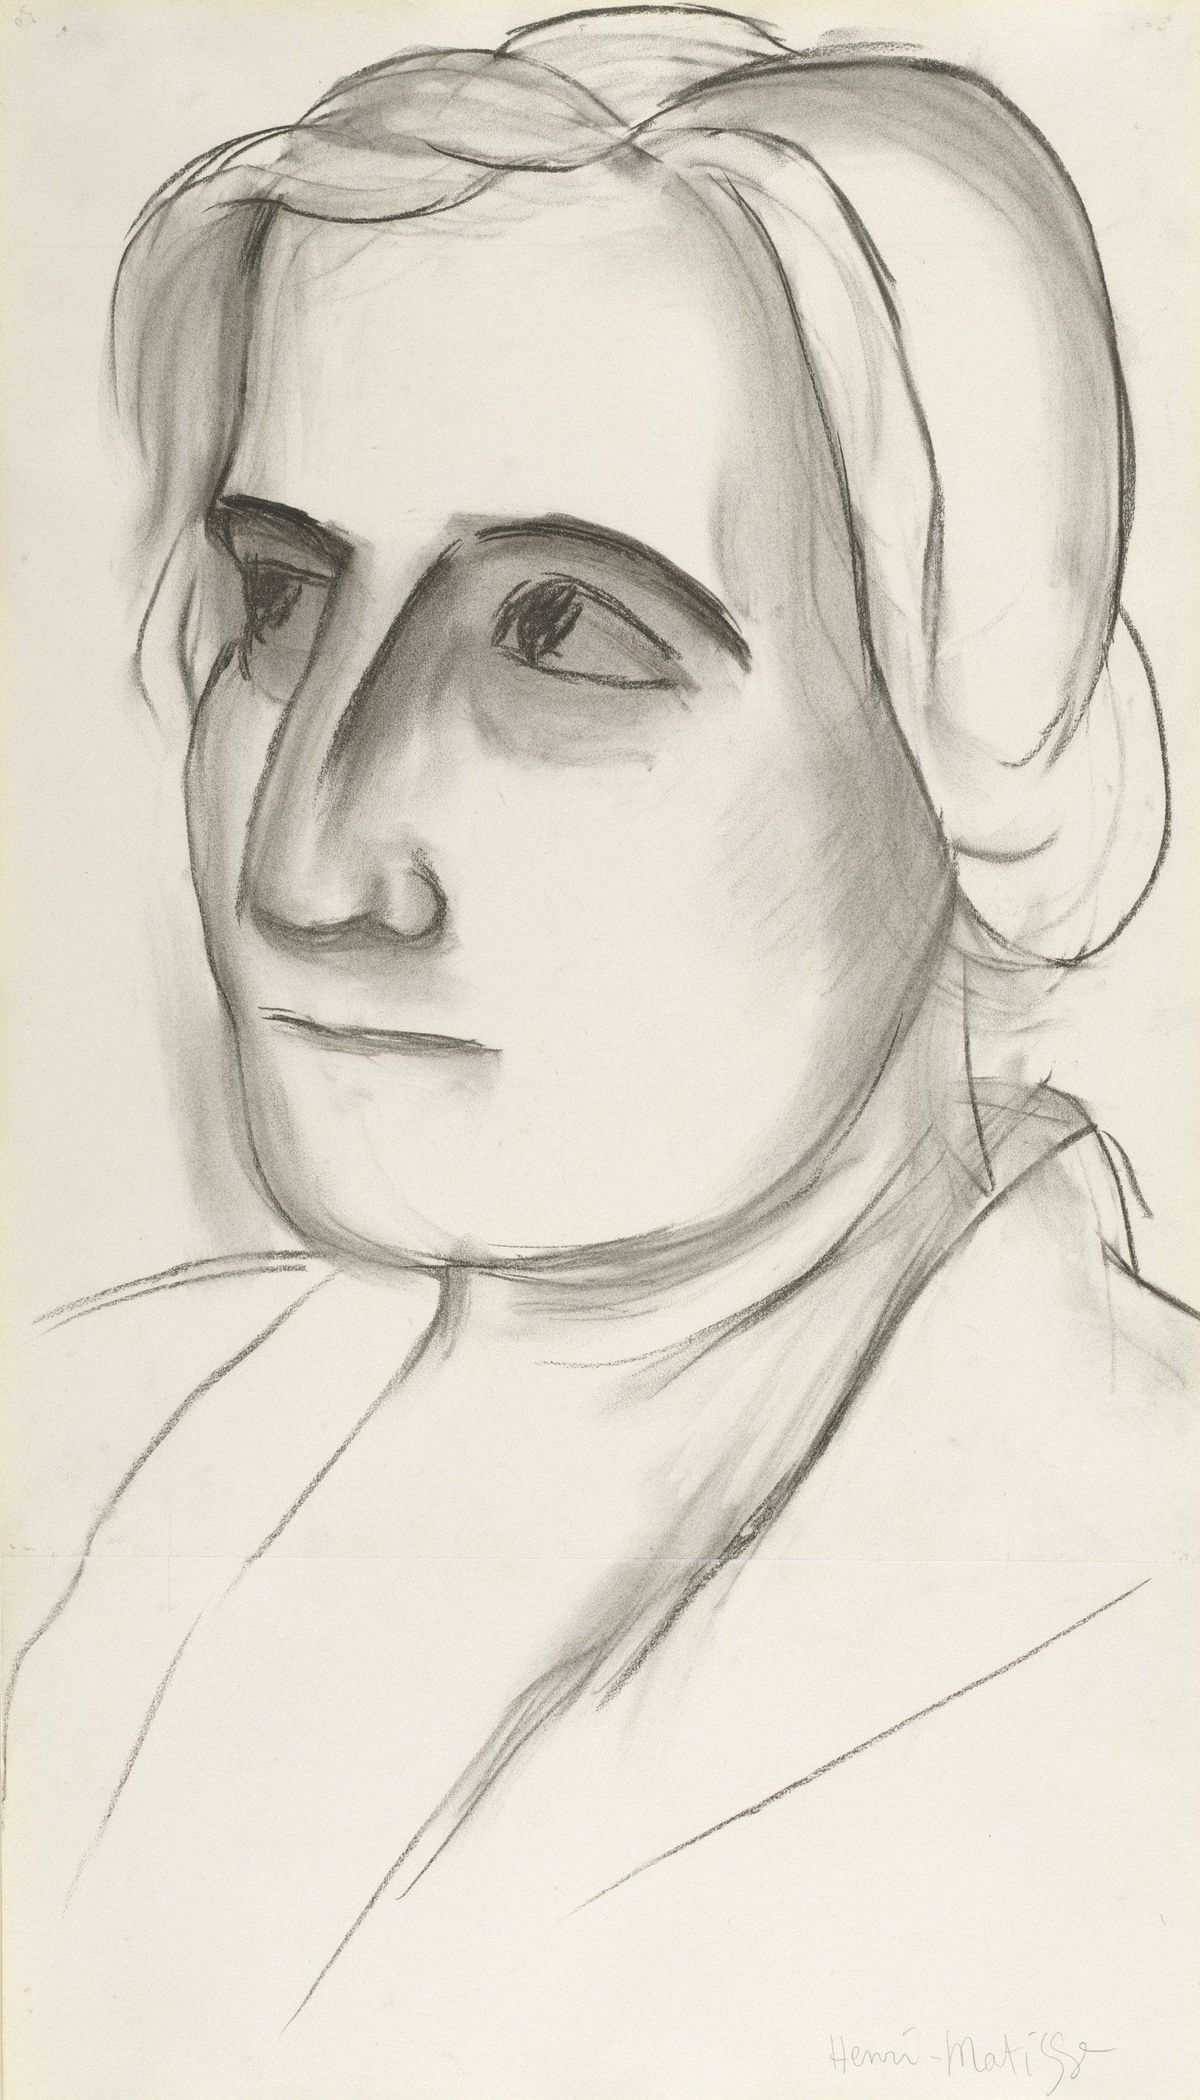 Henri Matisse, Etta Cone (VI/VI), 1931-1934, charcoal with stumping, The Baltimore Museum of Art: The Cone Collection, formed by Dr. Claribel Cone and Miss Etta Cone of Baltimore, Maryland, BMA